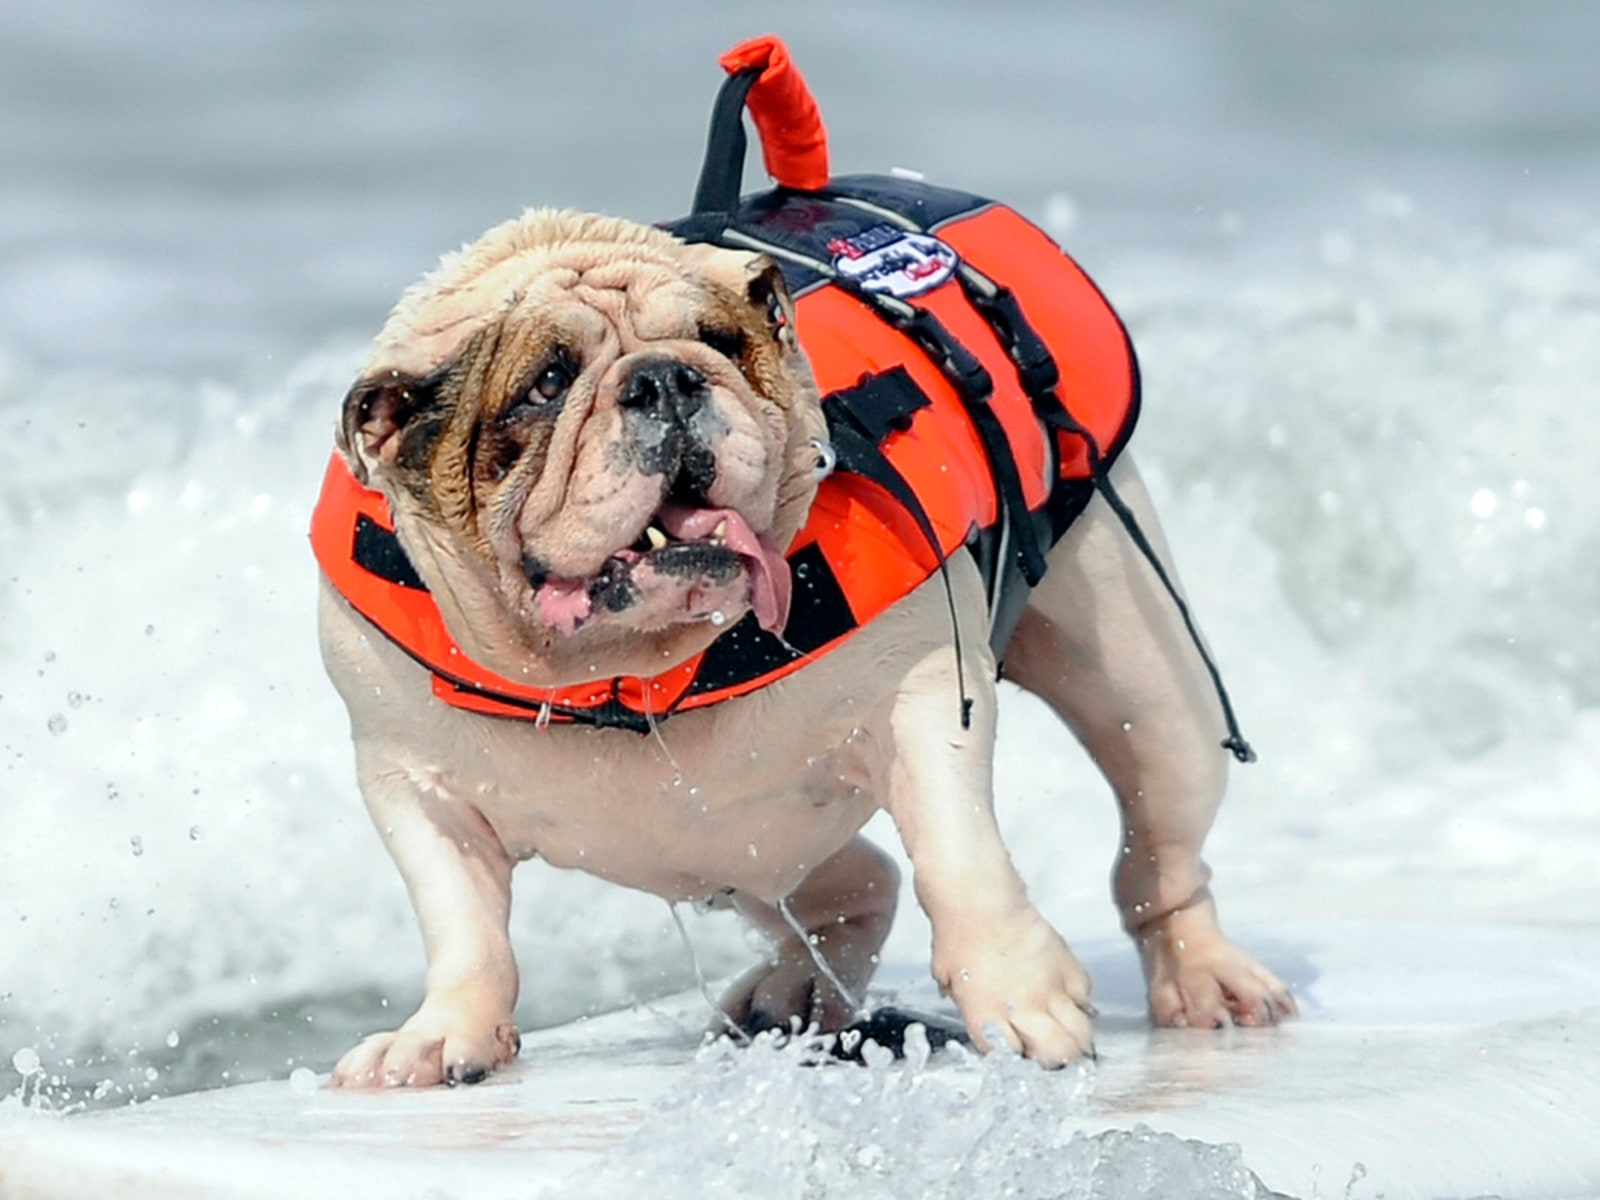 Image: Betsy, a seven-year-old English Bulldog, rides a wave during the surfing competition of the Purina Incredible Dog Challenge in San Diego